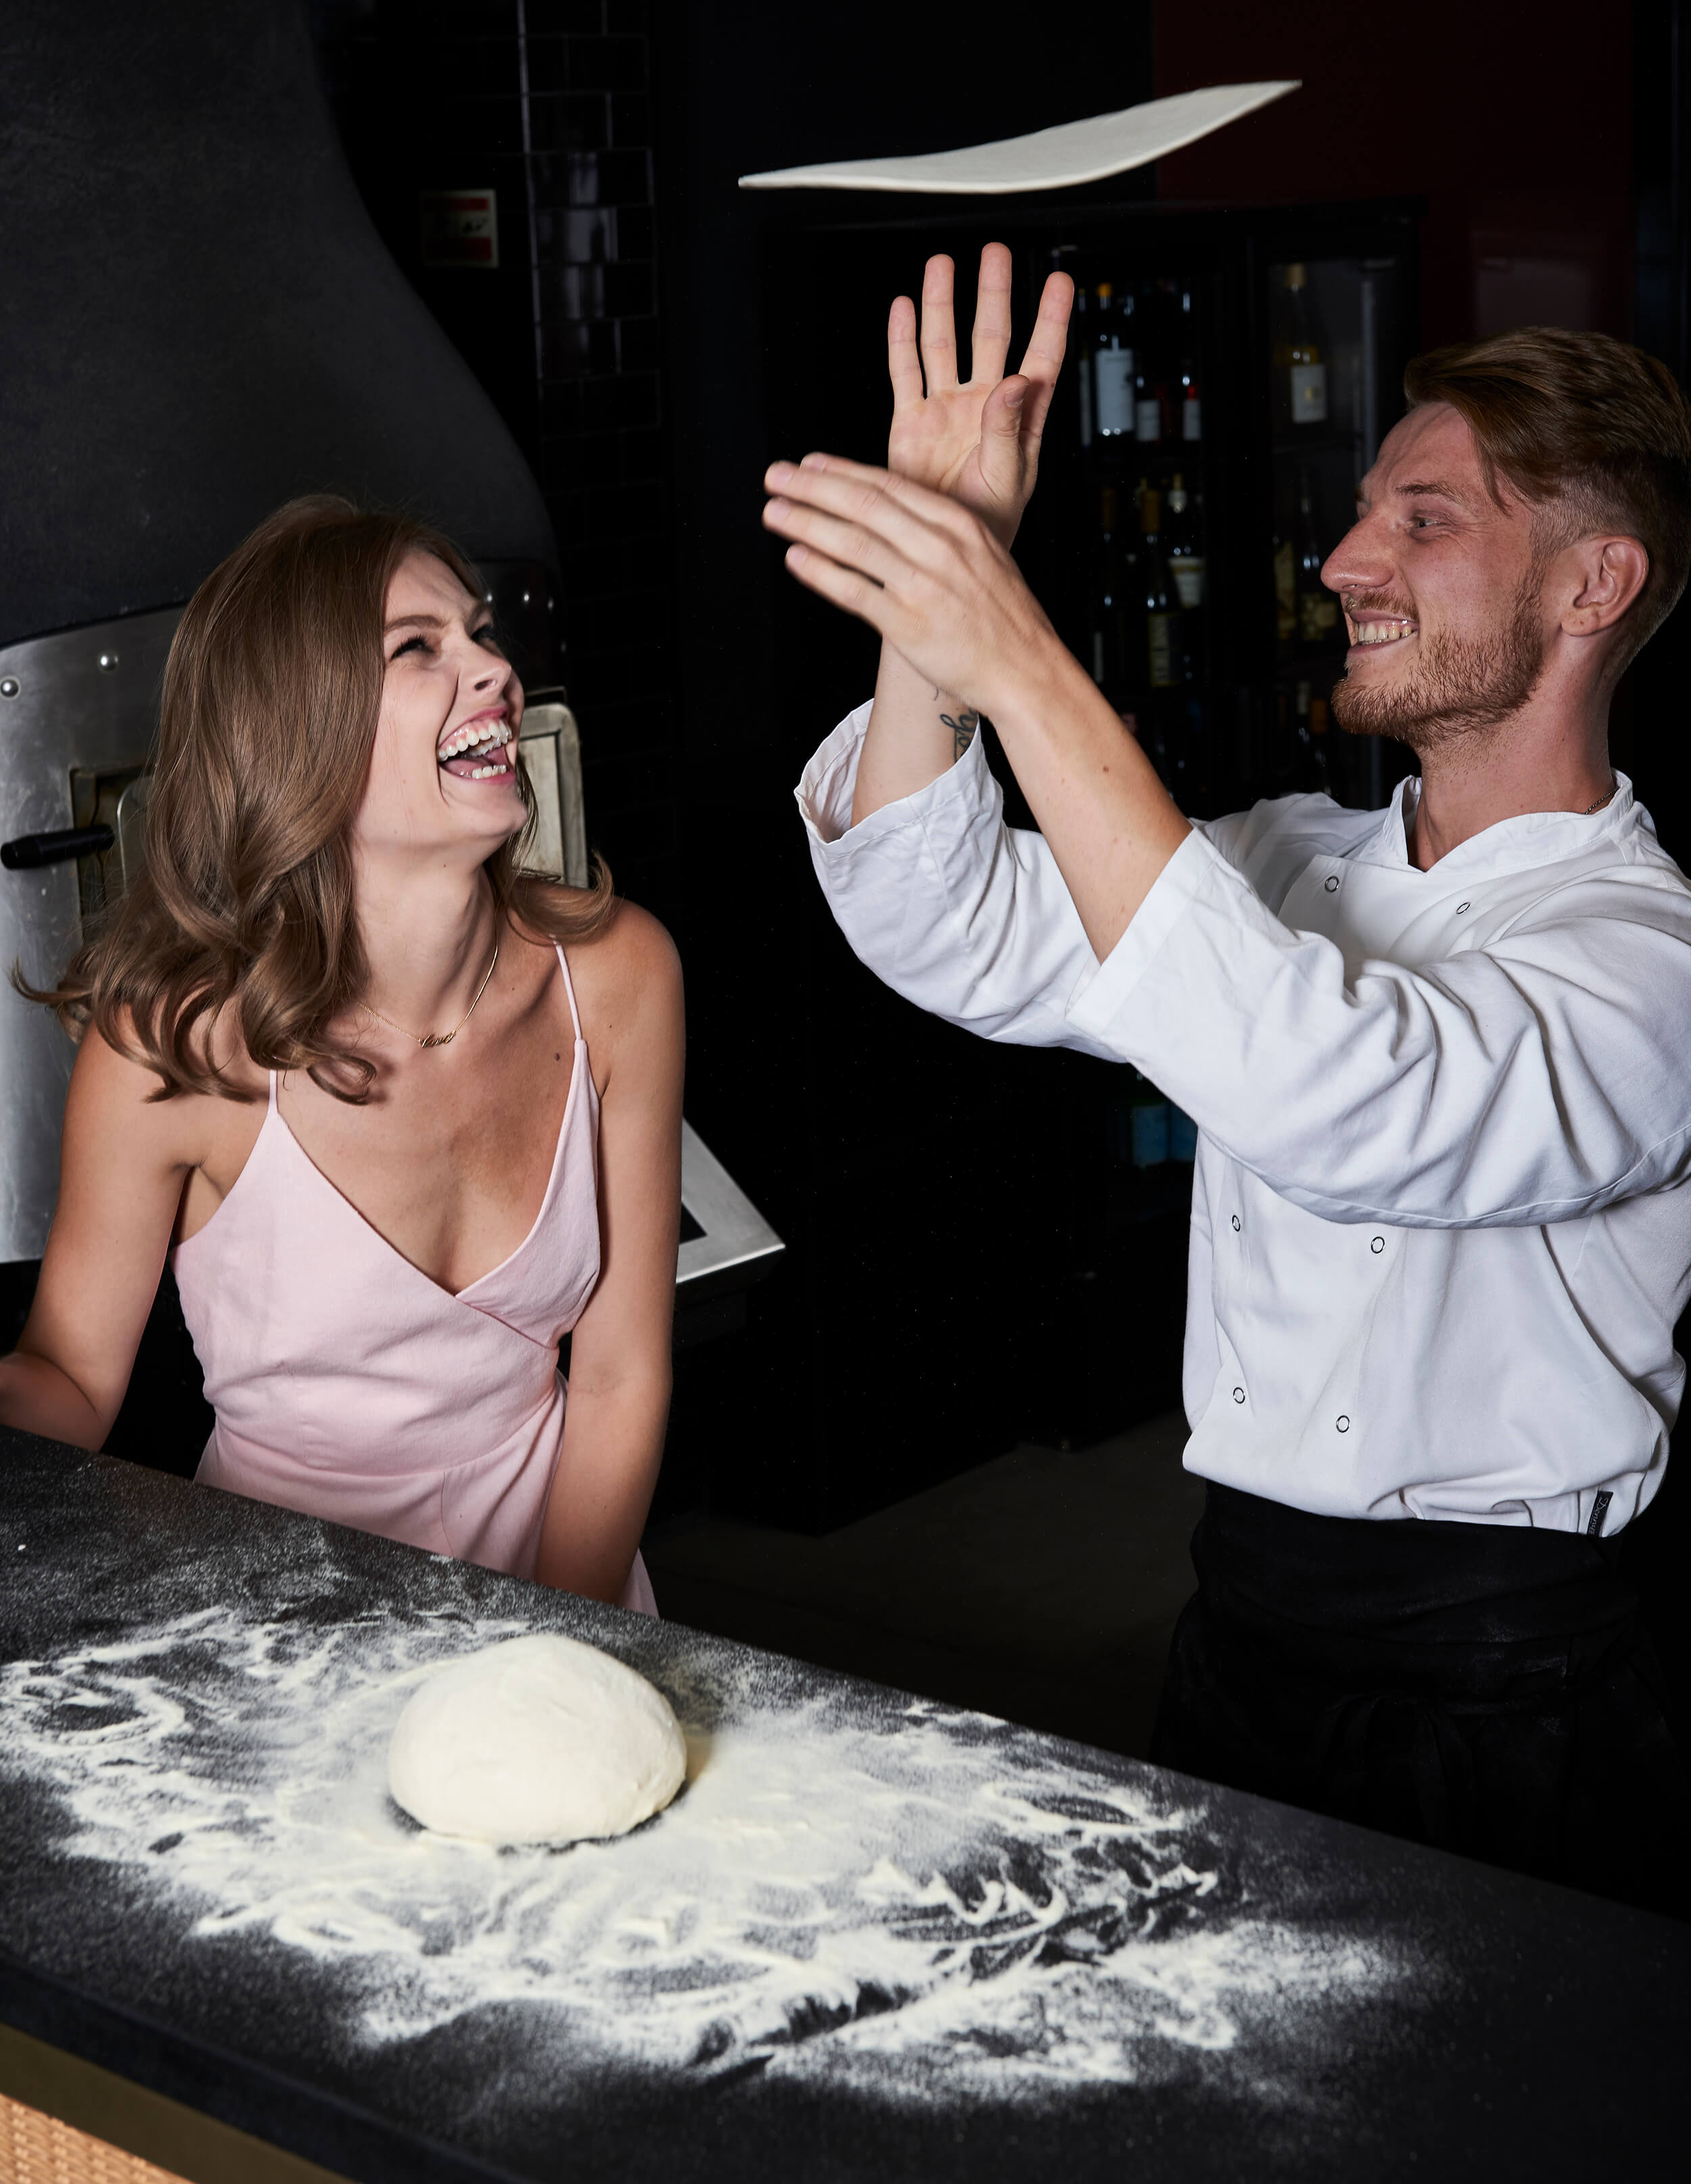 Chef spinning dough while woman is laughing.